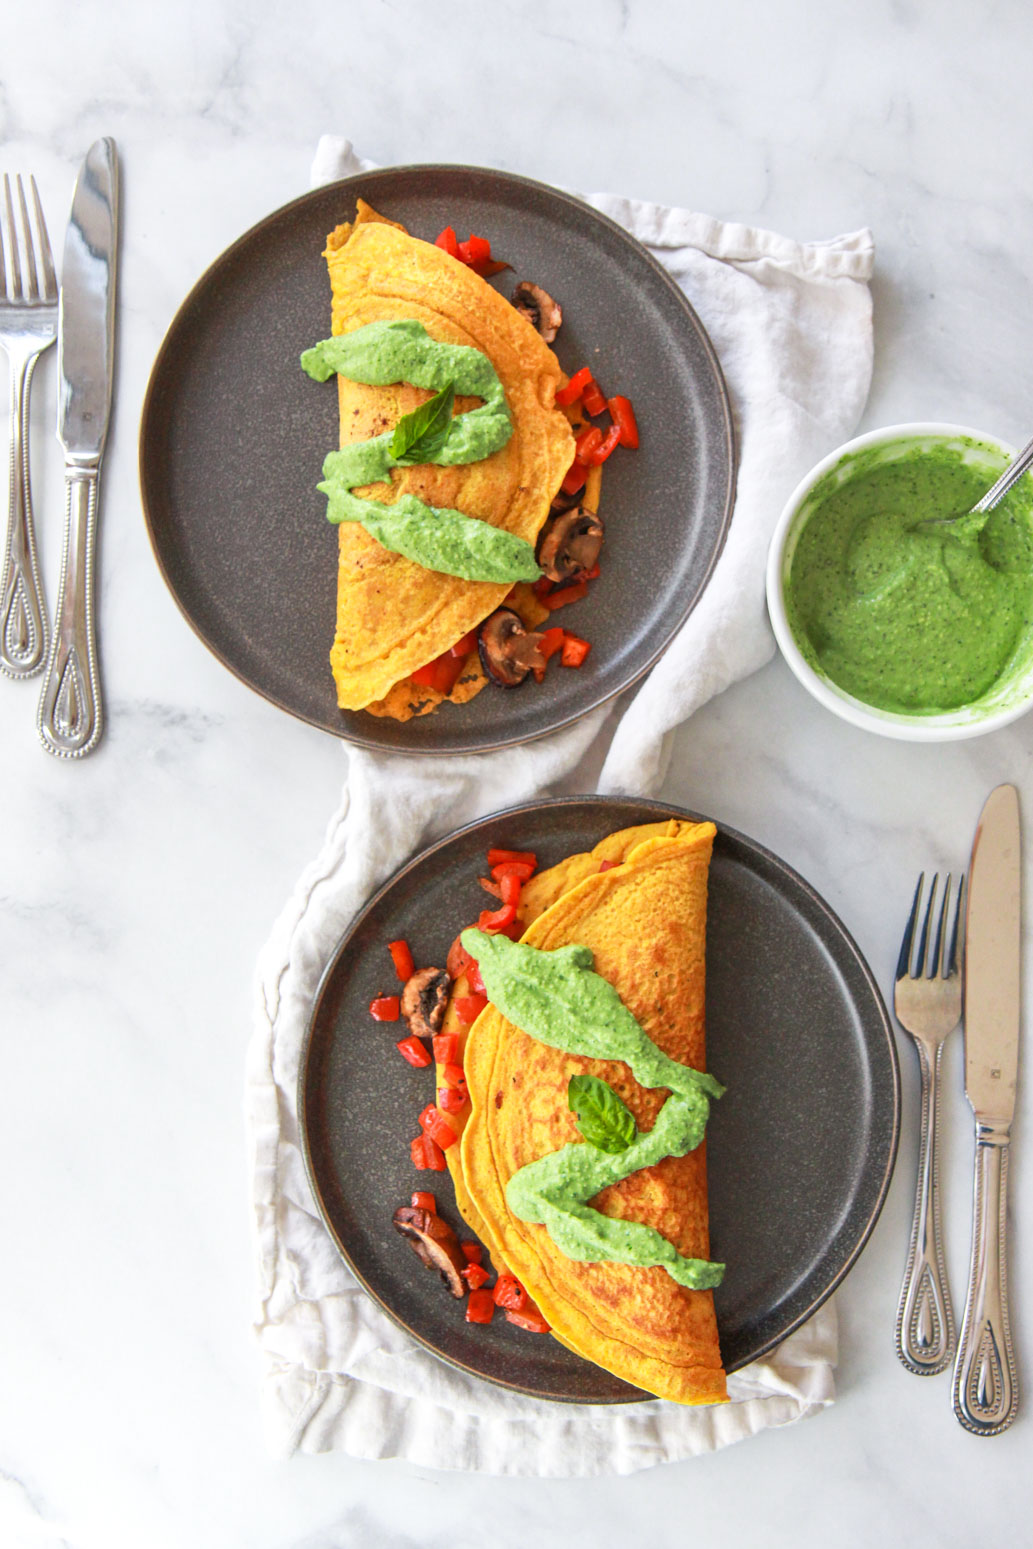 This chickpea omelet recipe is a delicious vegan alternative to a traditional egg omelet. Also gluten-free, this chickpea omelet does not crack or break when flipped, can be stuffed with your favorite veggies, and is topped with a dairy-free avocado pesto.